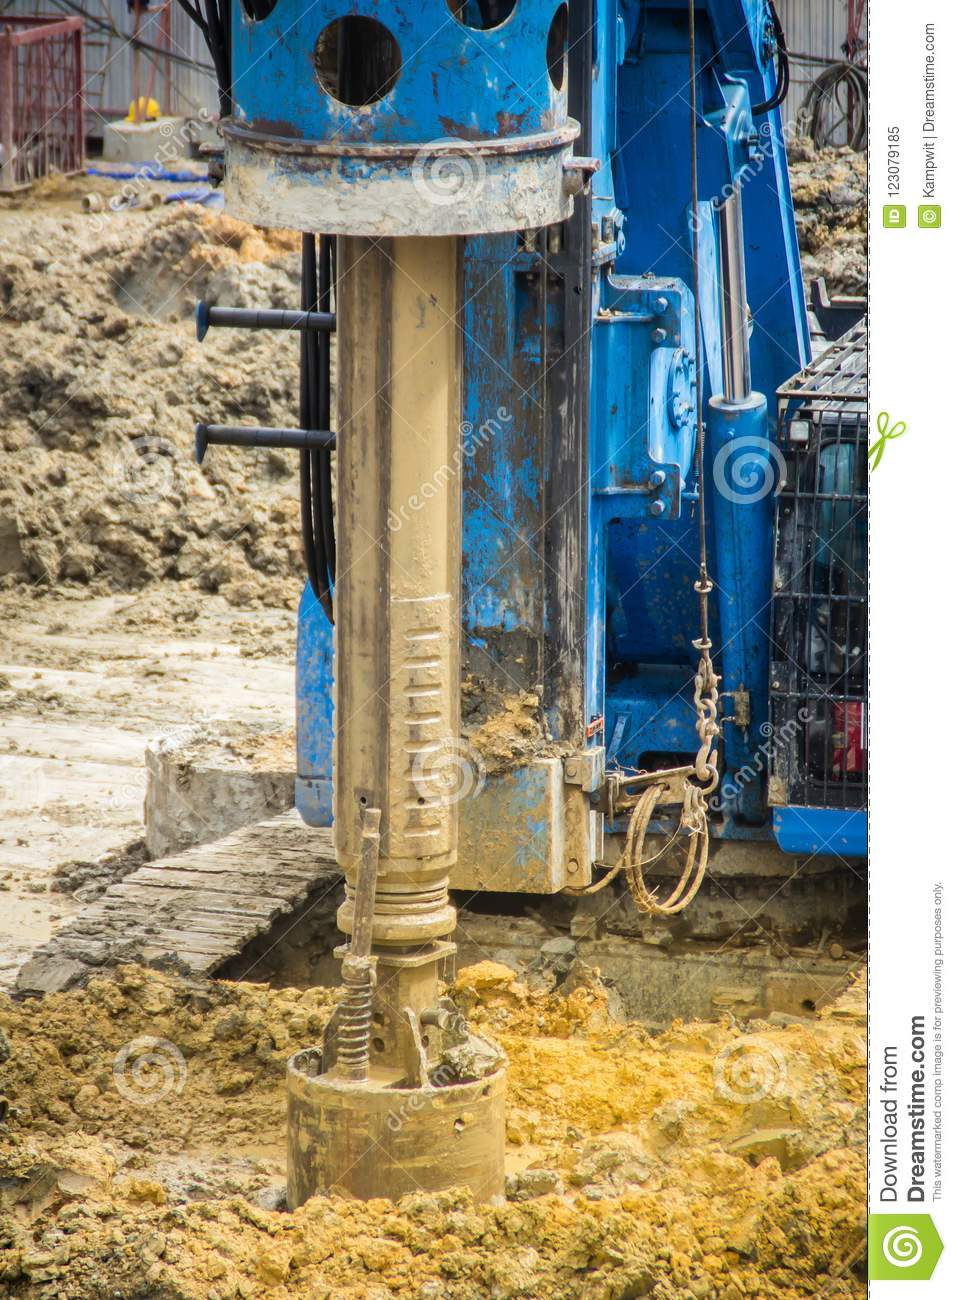 Hydraulic Drilling Machine Is Boring Holes In The